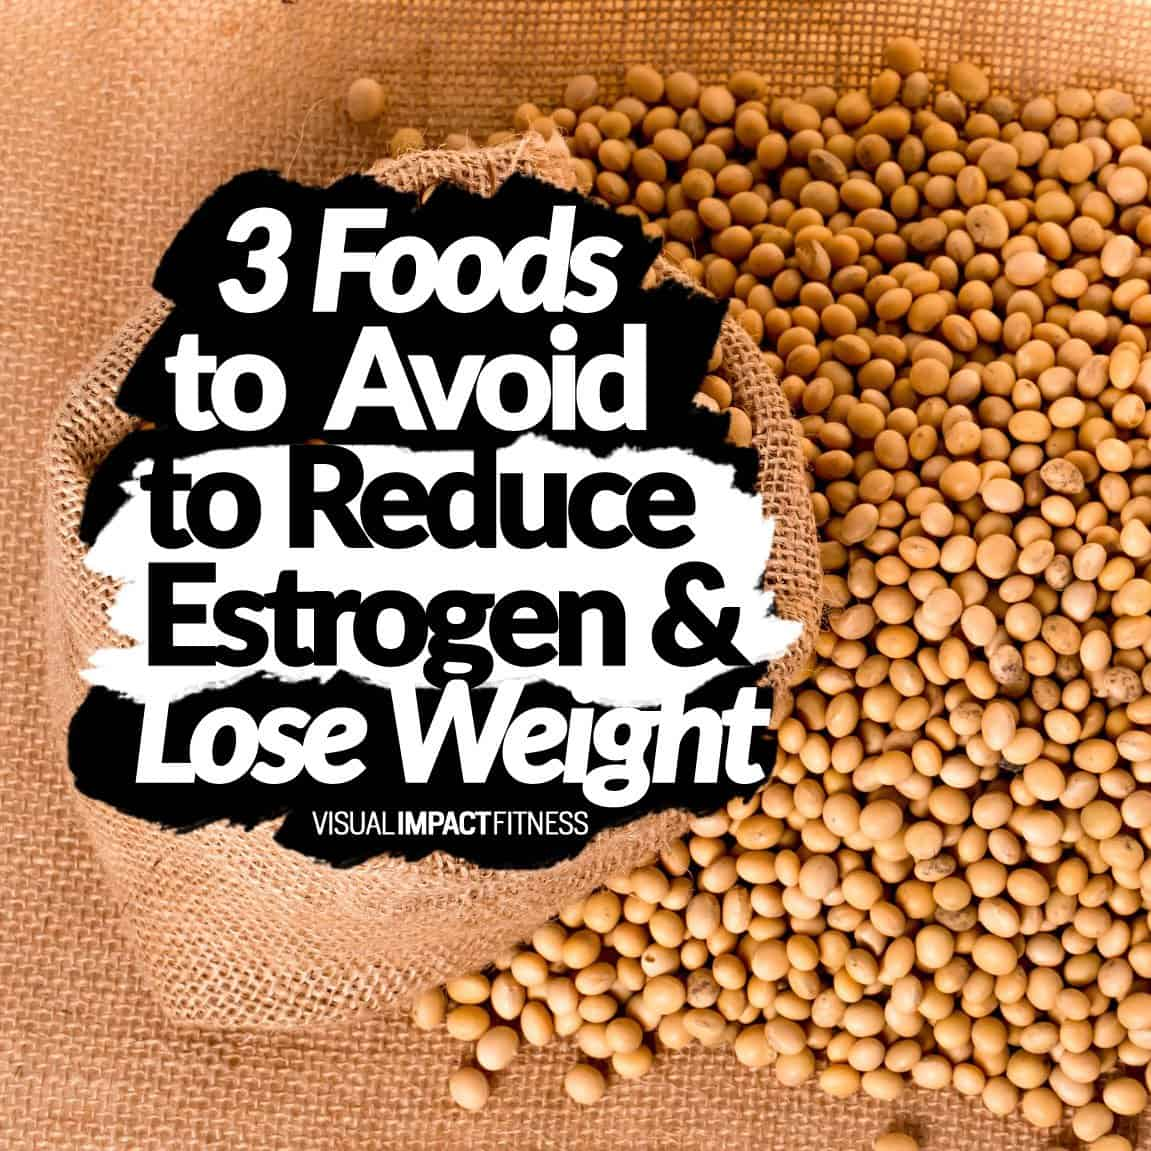 3 Foods to Reduce Estrogen to Lose Weight